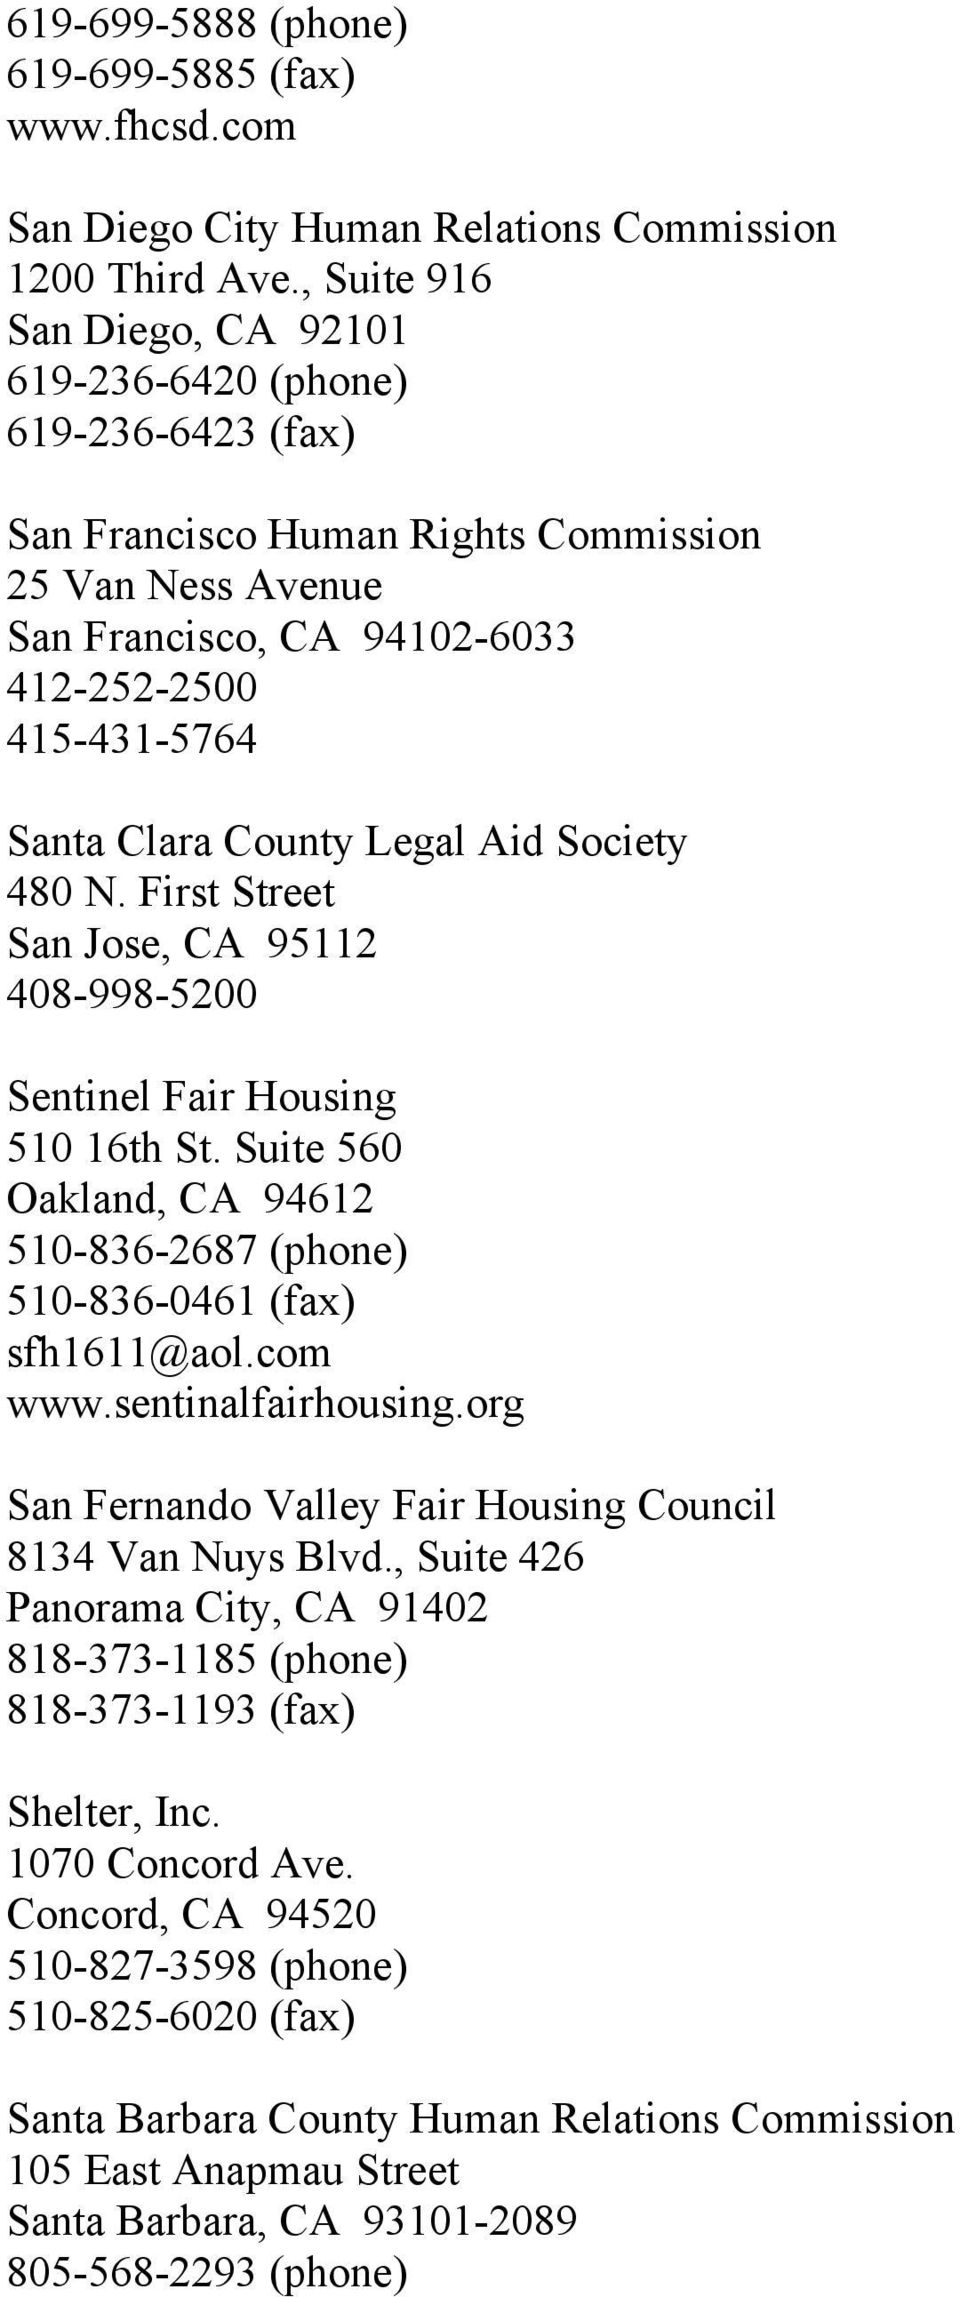 County Legal Aid Society 480 N. First Street San Jose, CA 95112 408-998-5200 Sentinel Fair Housing 510 16th St. Suite 560 Oakland, CA 94612 510-836-2687 (phone) 510-836-0461 (fax) sfh1611@aol.com www.